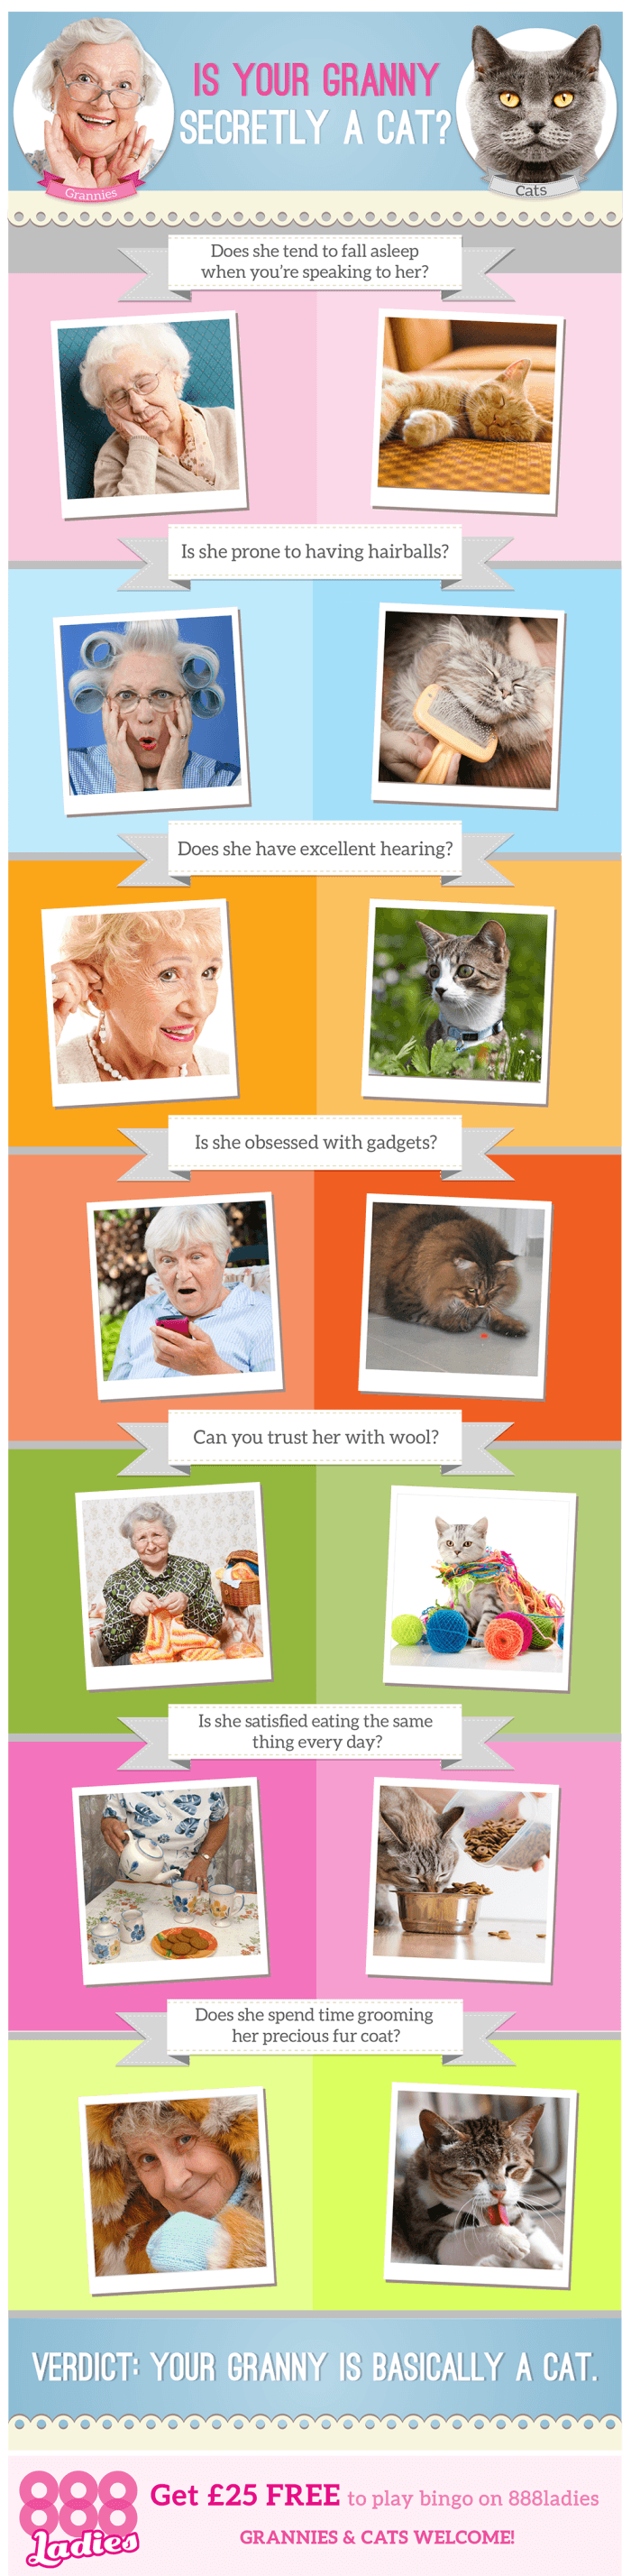 Is Your Granny Secretly a Cat?